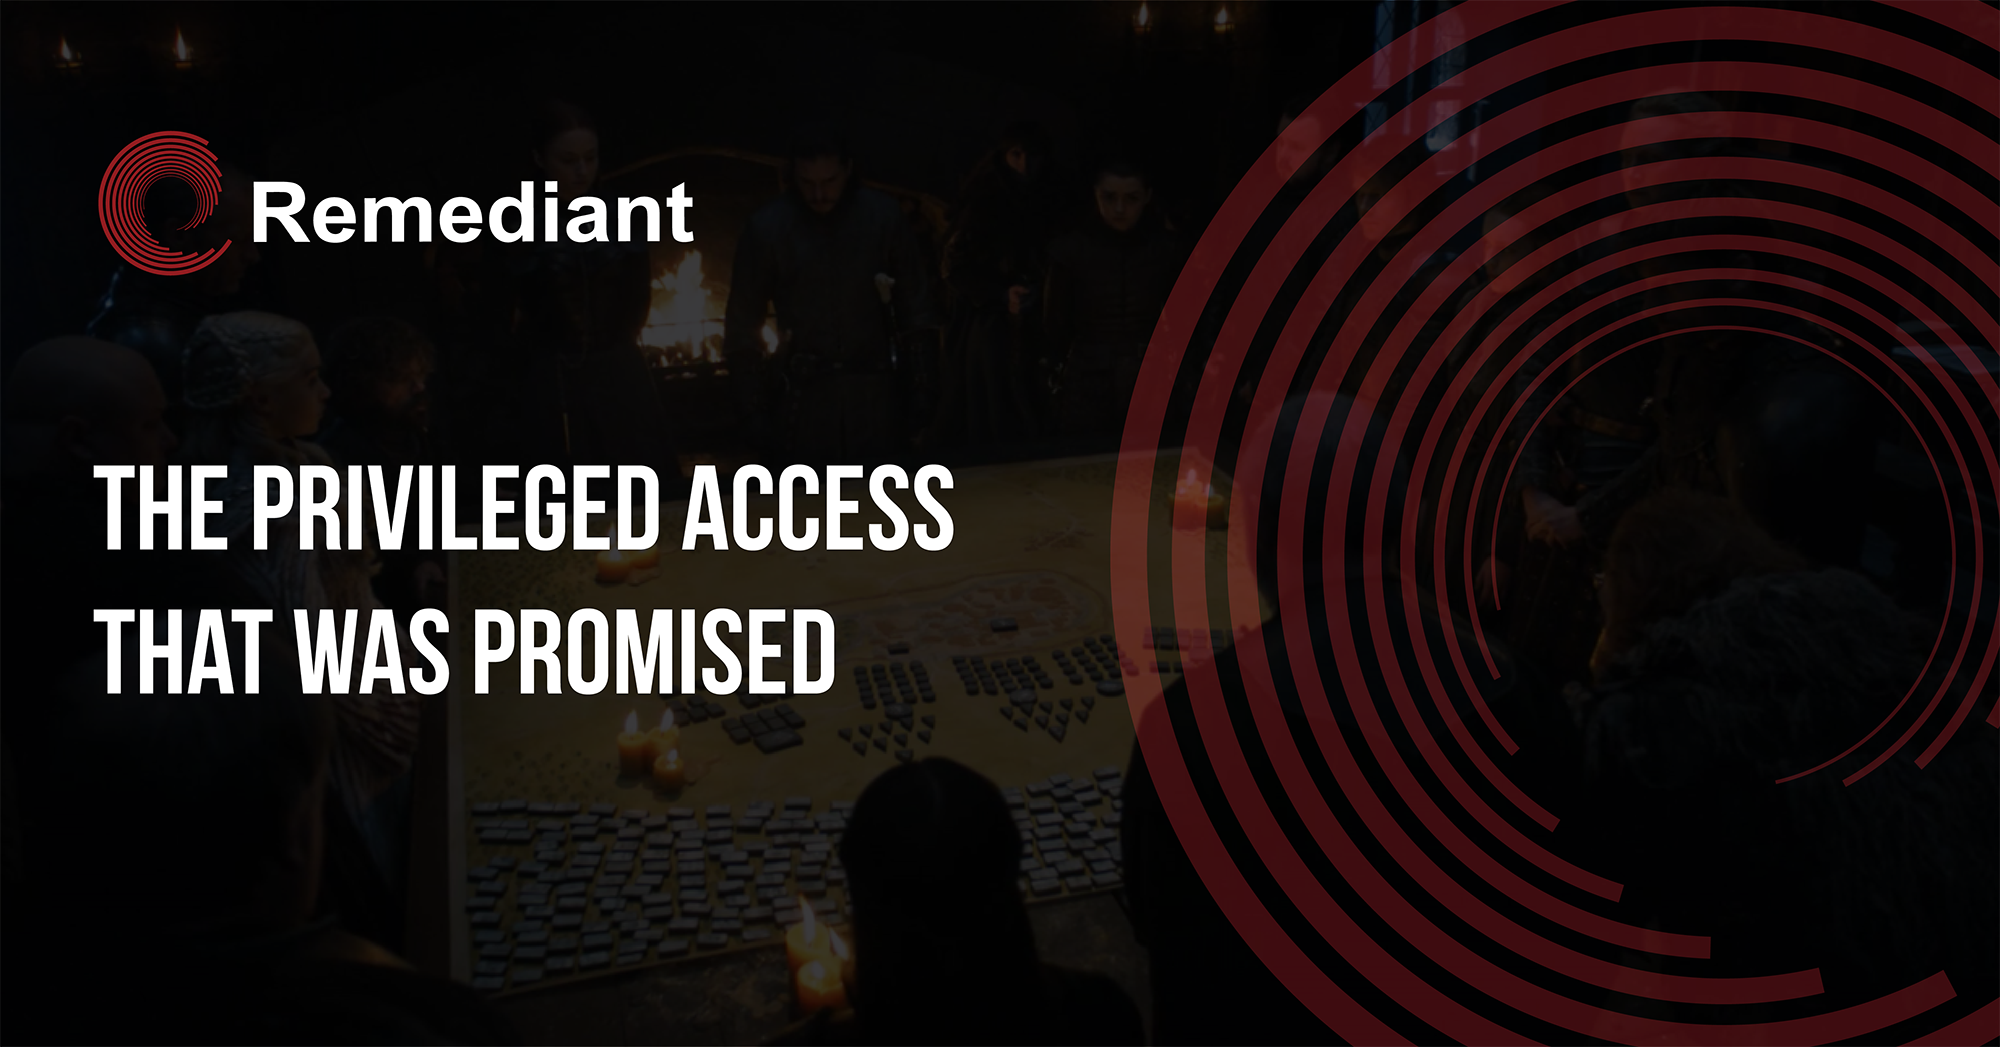 The Privileged Access That Was Promised